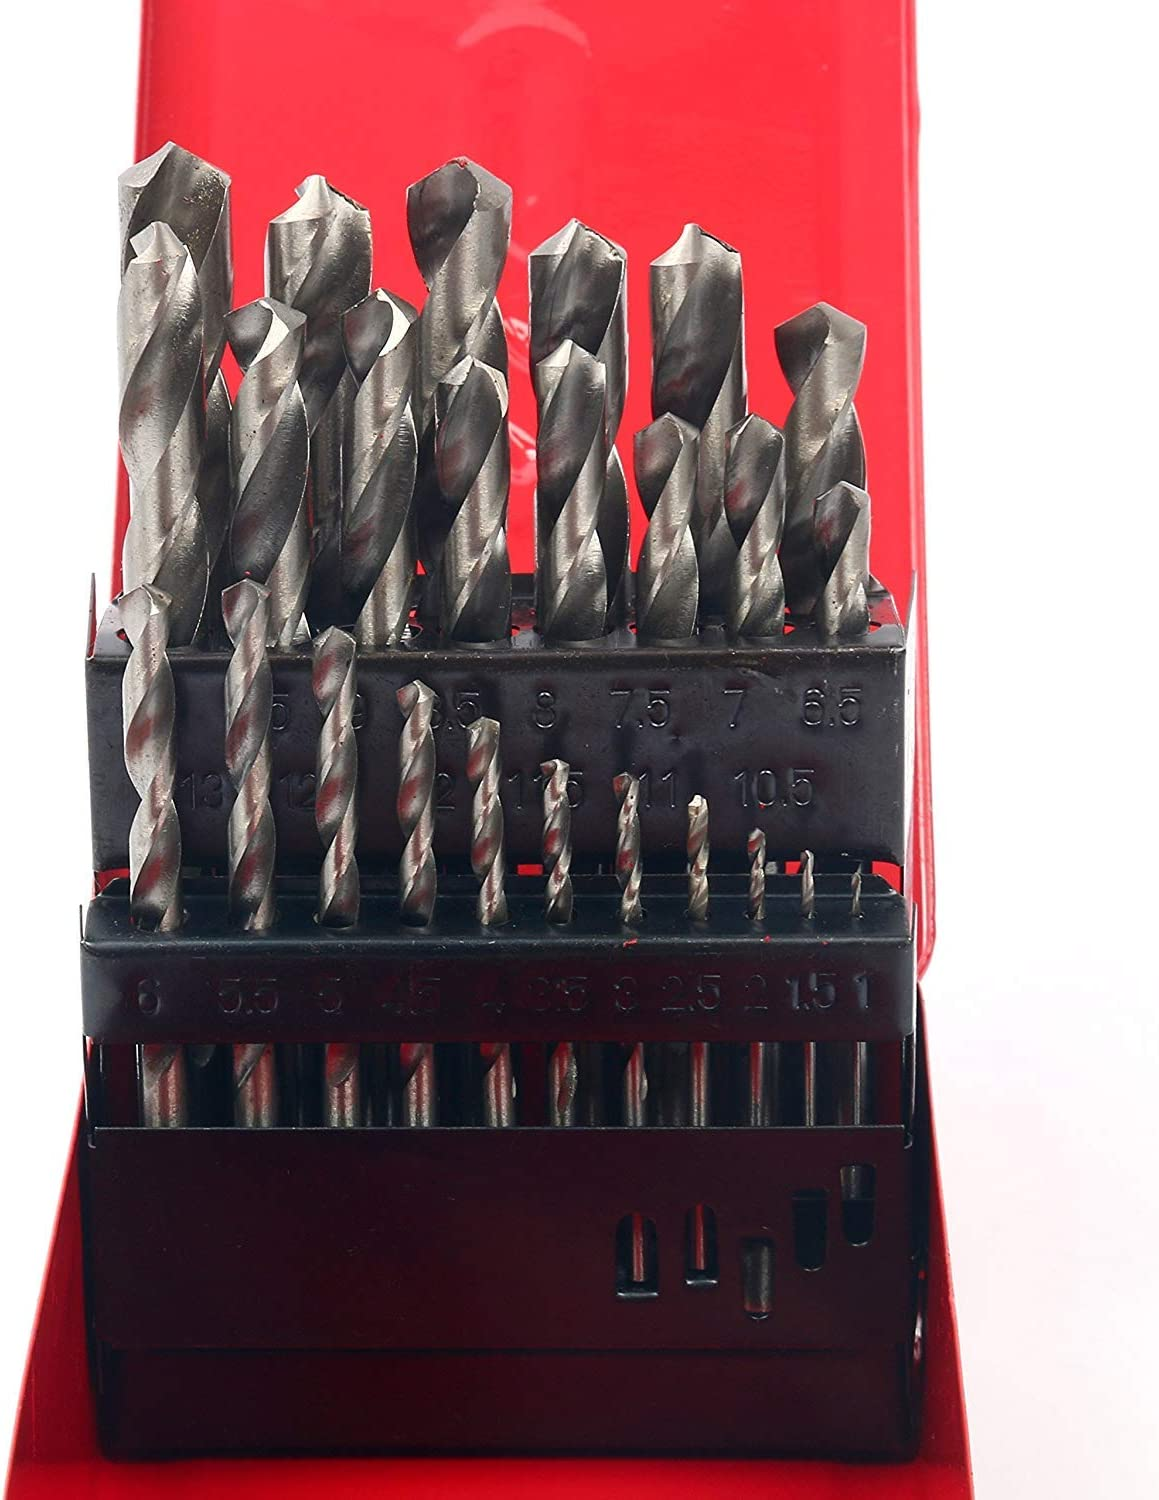 with Metal Case 38pcs Twist High Speed Steel Drill Set Drilling Bit Metal Metric Tool 1-13mm 118 Degree Split Point Angle HSS Drill Bit